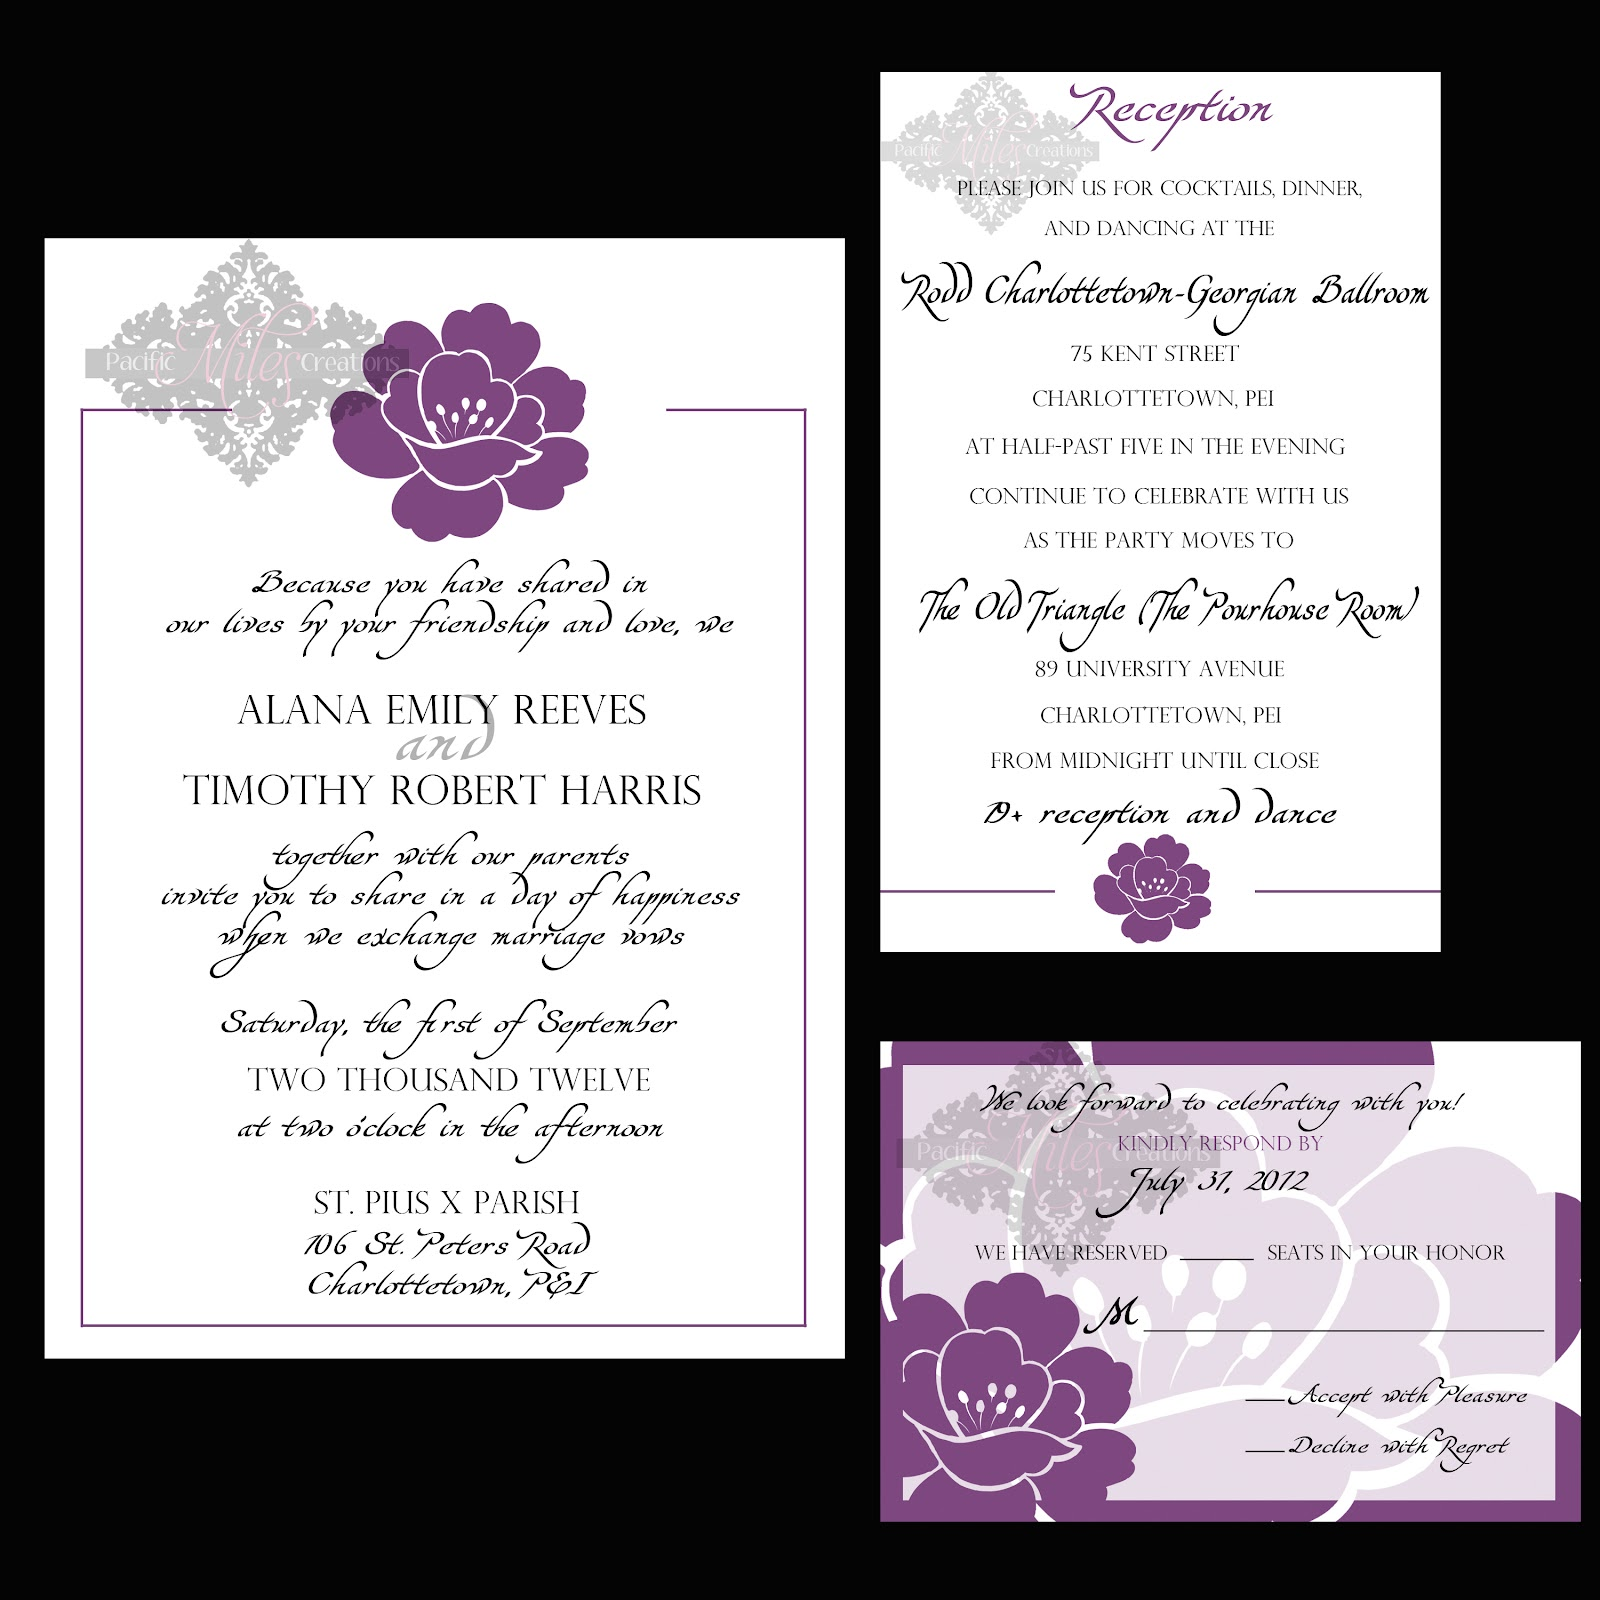 Wedding Invitations Samples: Wedding Pictures Wedding Photos: Photo Wedding Invitations